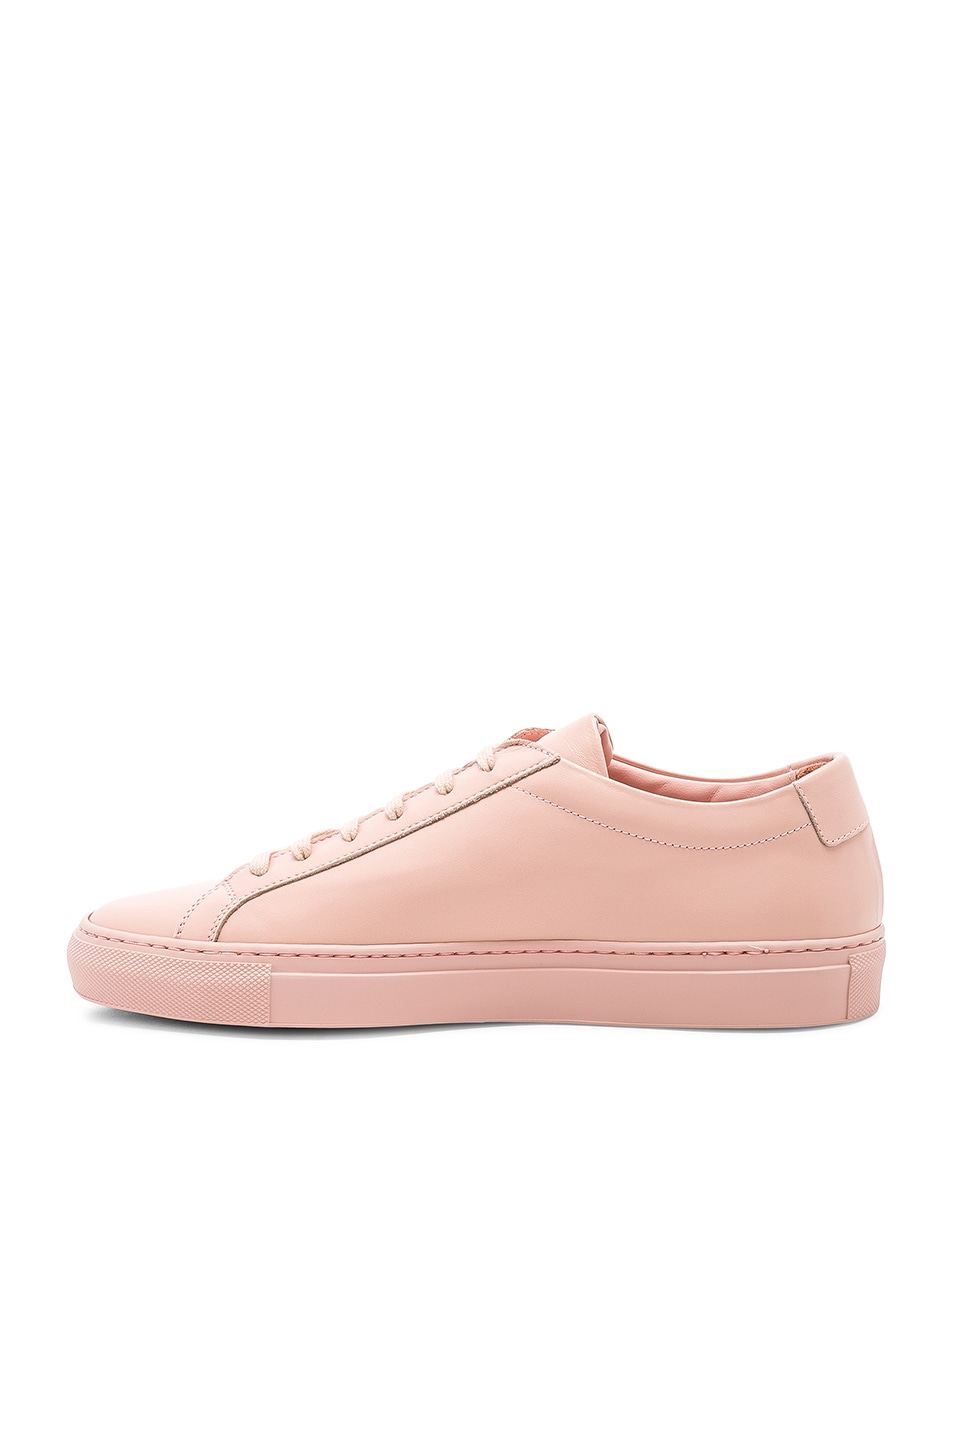 Image 5 of Common Projects Original Leather Achilles Low in Blush